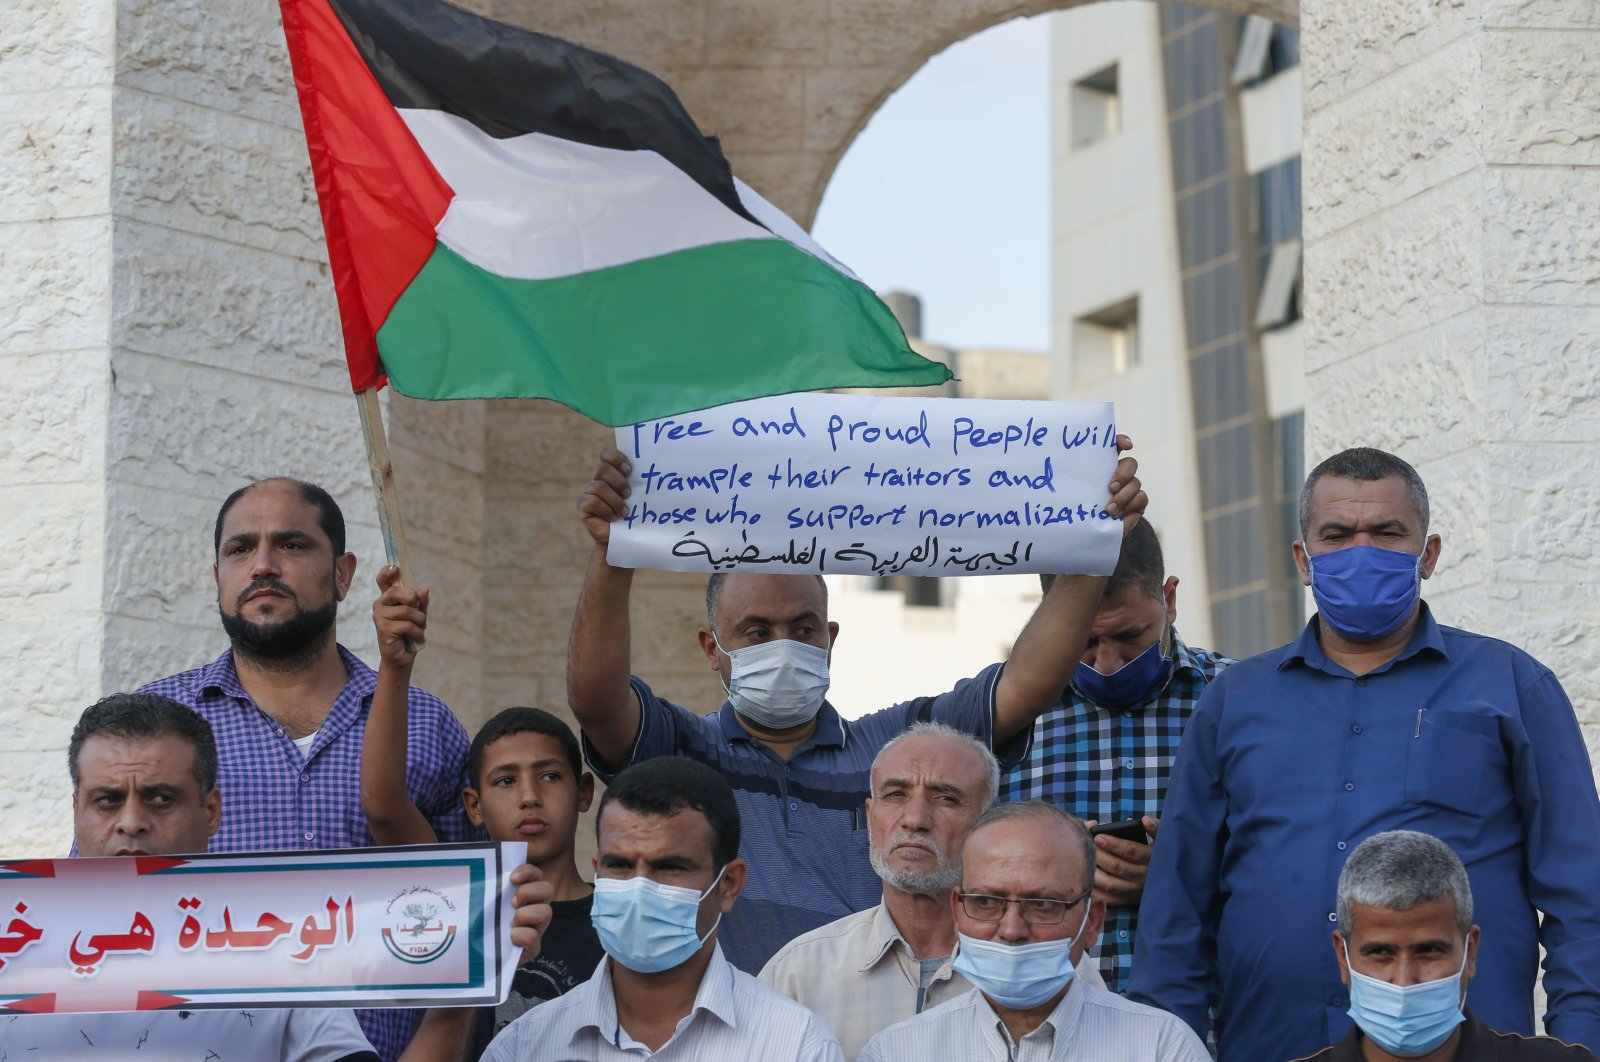 Palestinian demonstrators lift placards protesting the Sudan normalization agreement with Israel, in Rafah town in the southern Gaza Strip on Oct. 24, 2020.  (AFP Photo)